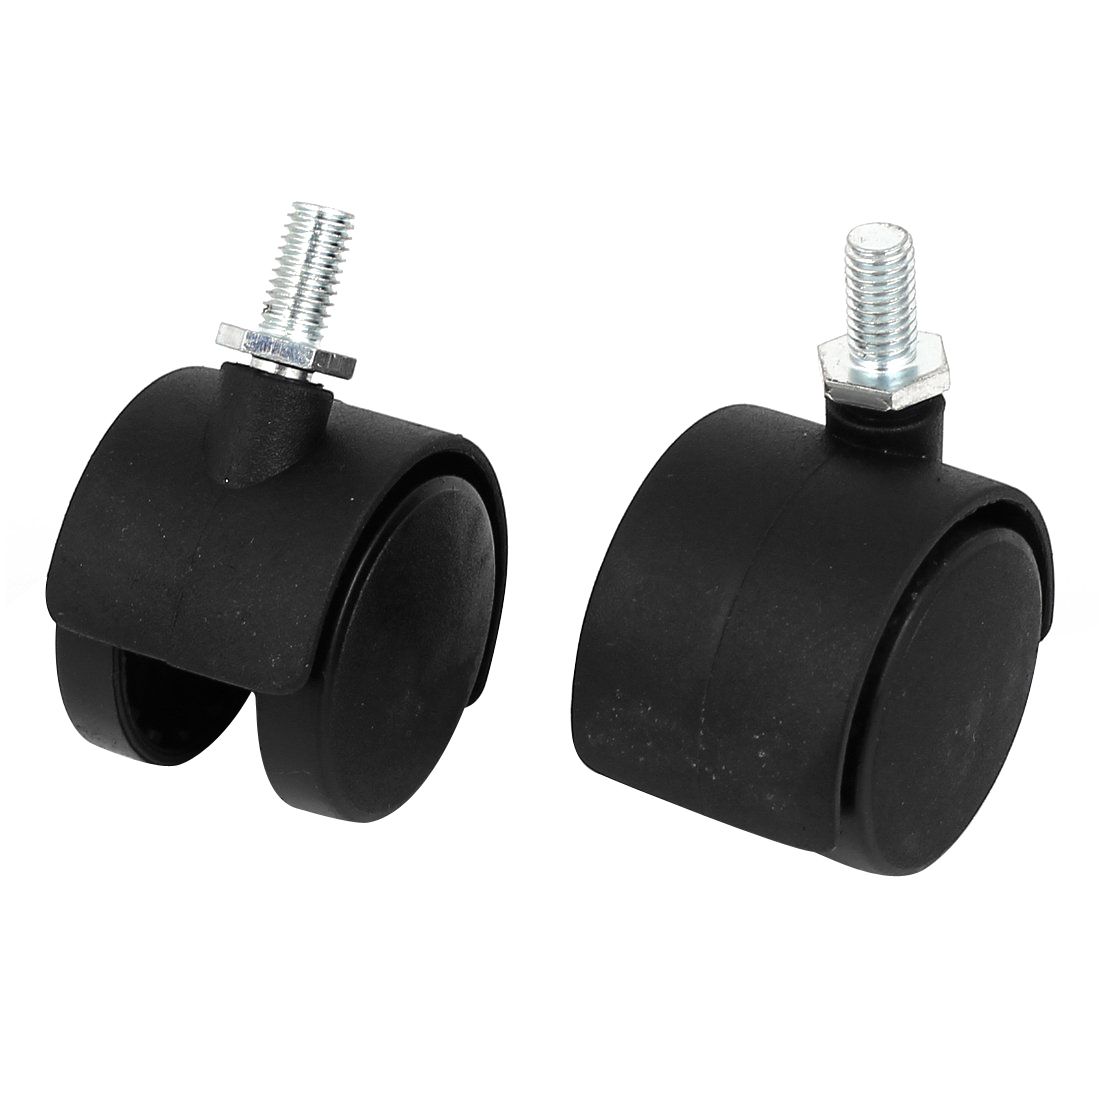 Casters wood stem furniture casters metal furniture casters - Dsha New Hot 8mm Threaded Stem 1 5 Inch Dia Wheel Chair Swivel Caster 2 Pcs Black